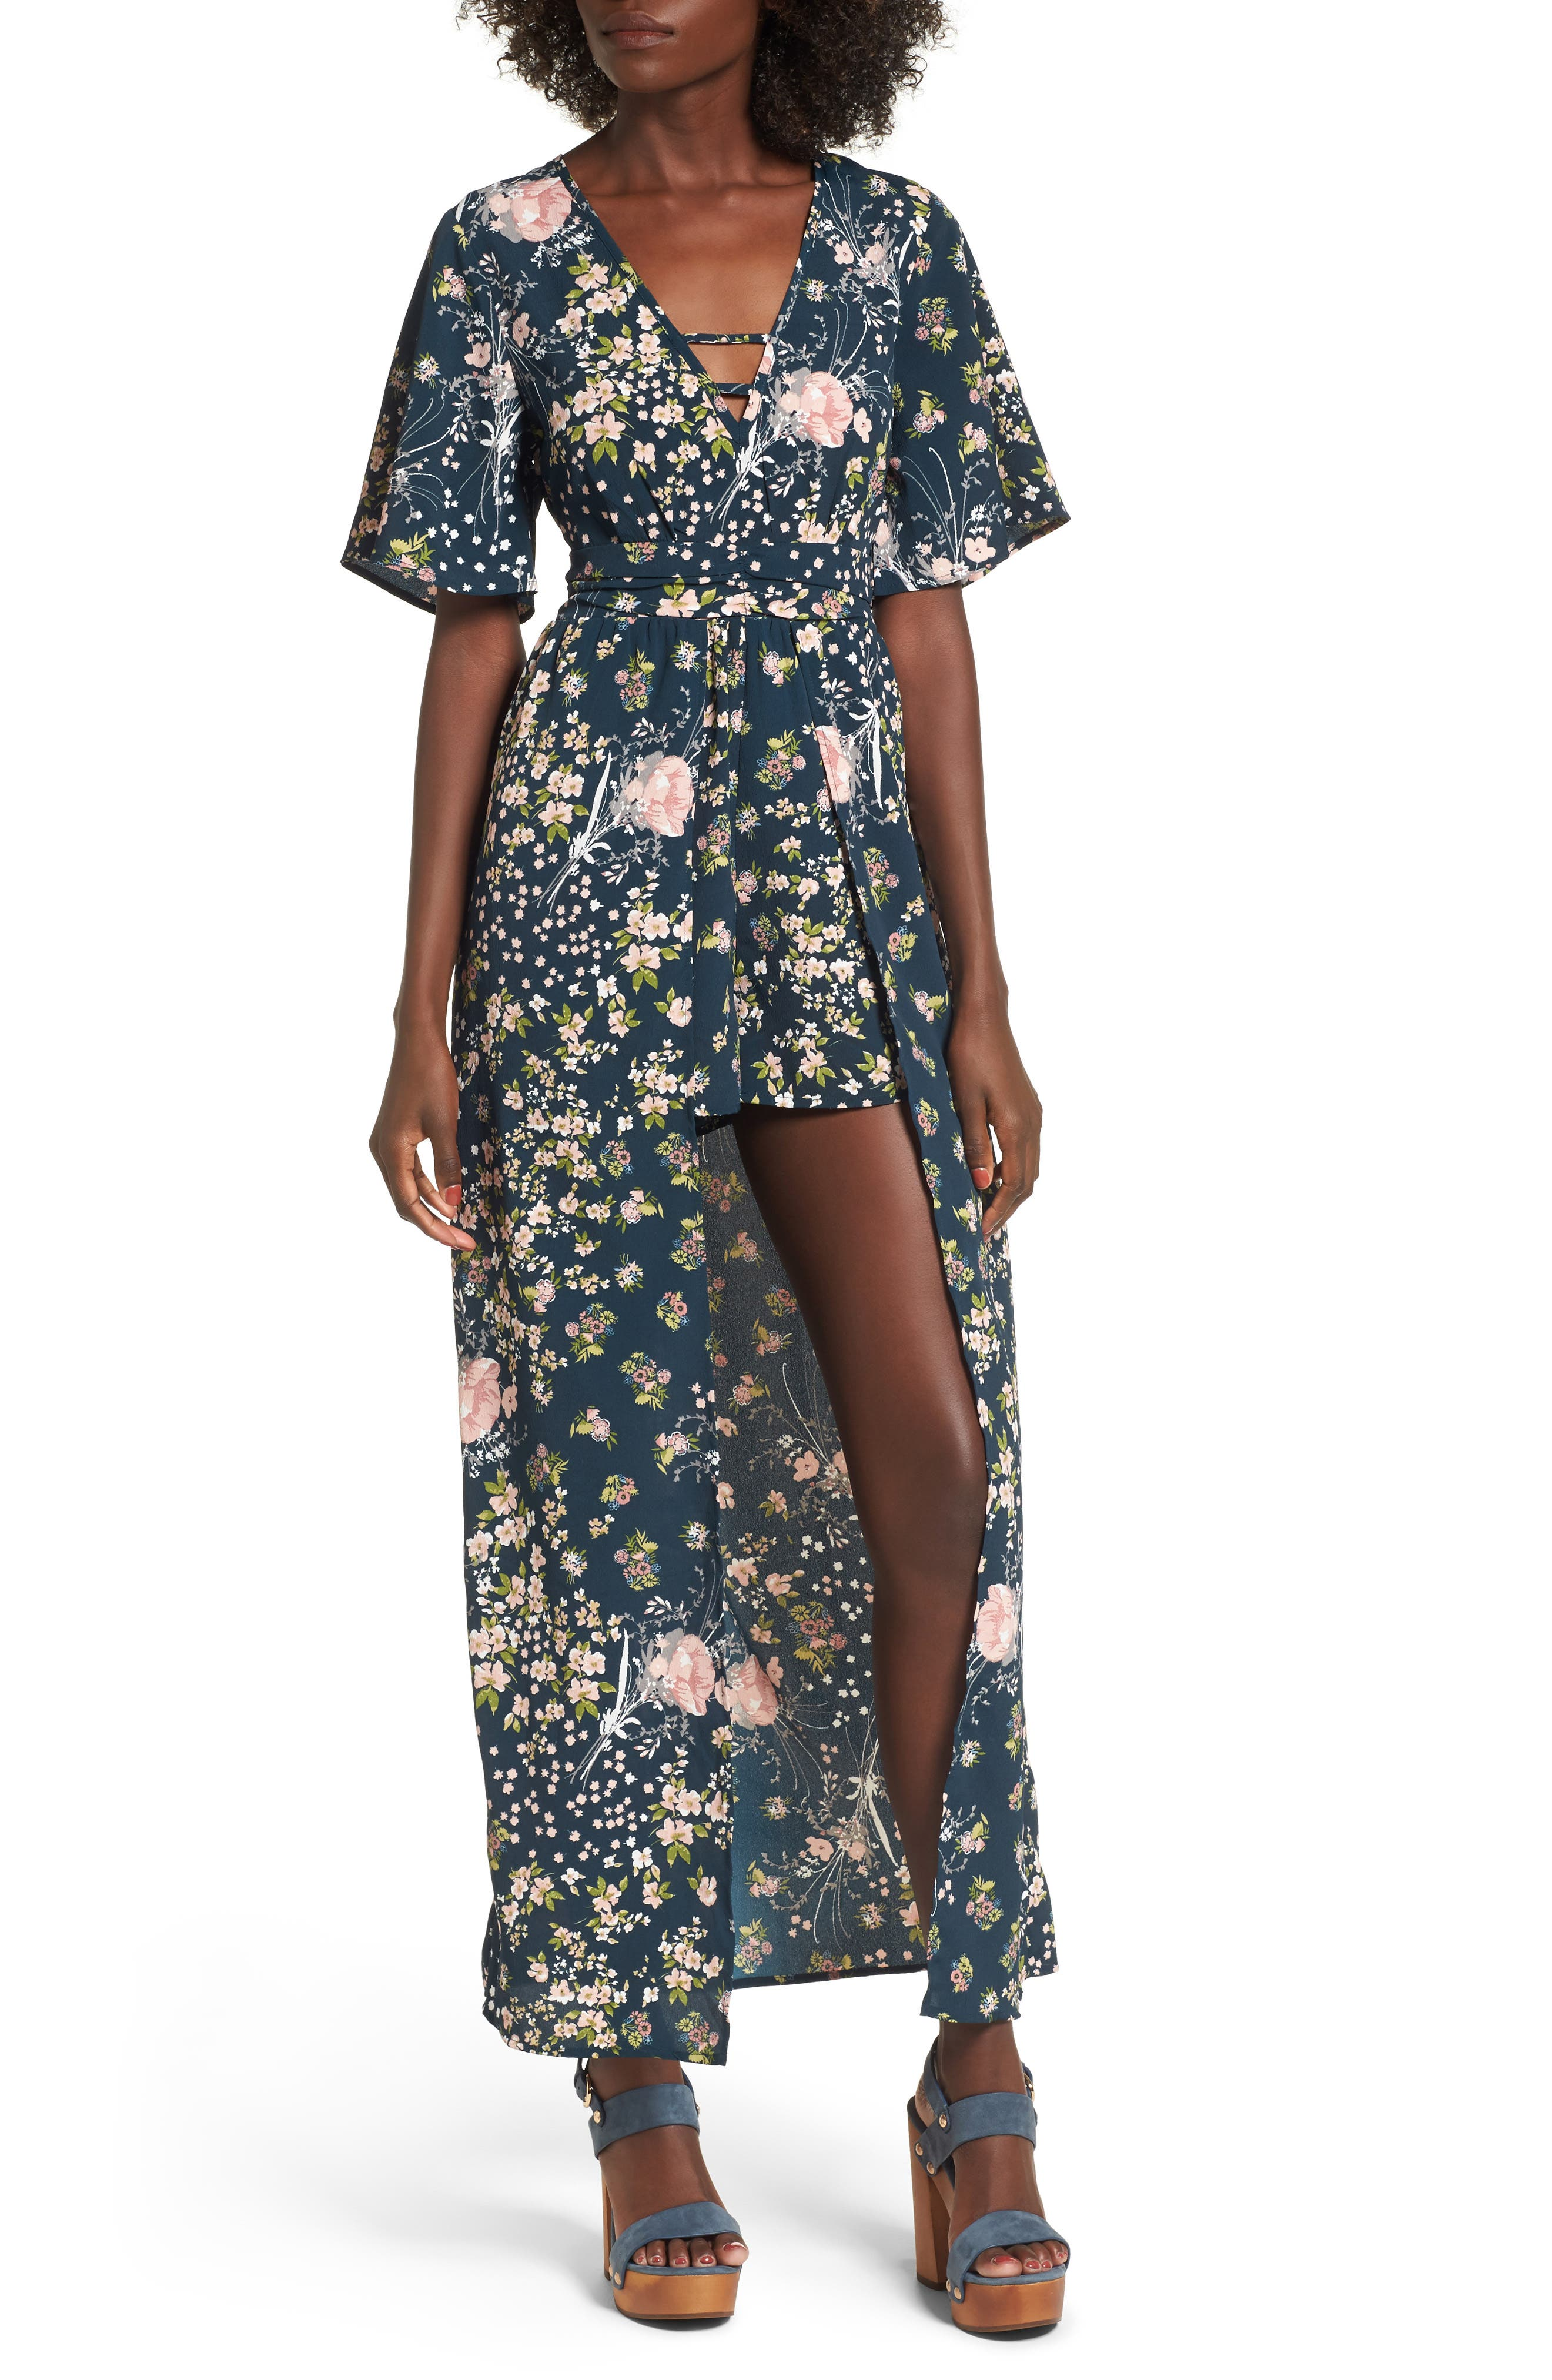 Alternate Image 1 Selected - Band of Gypsies Moody Floral Print Maxi Romper